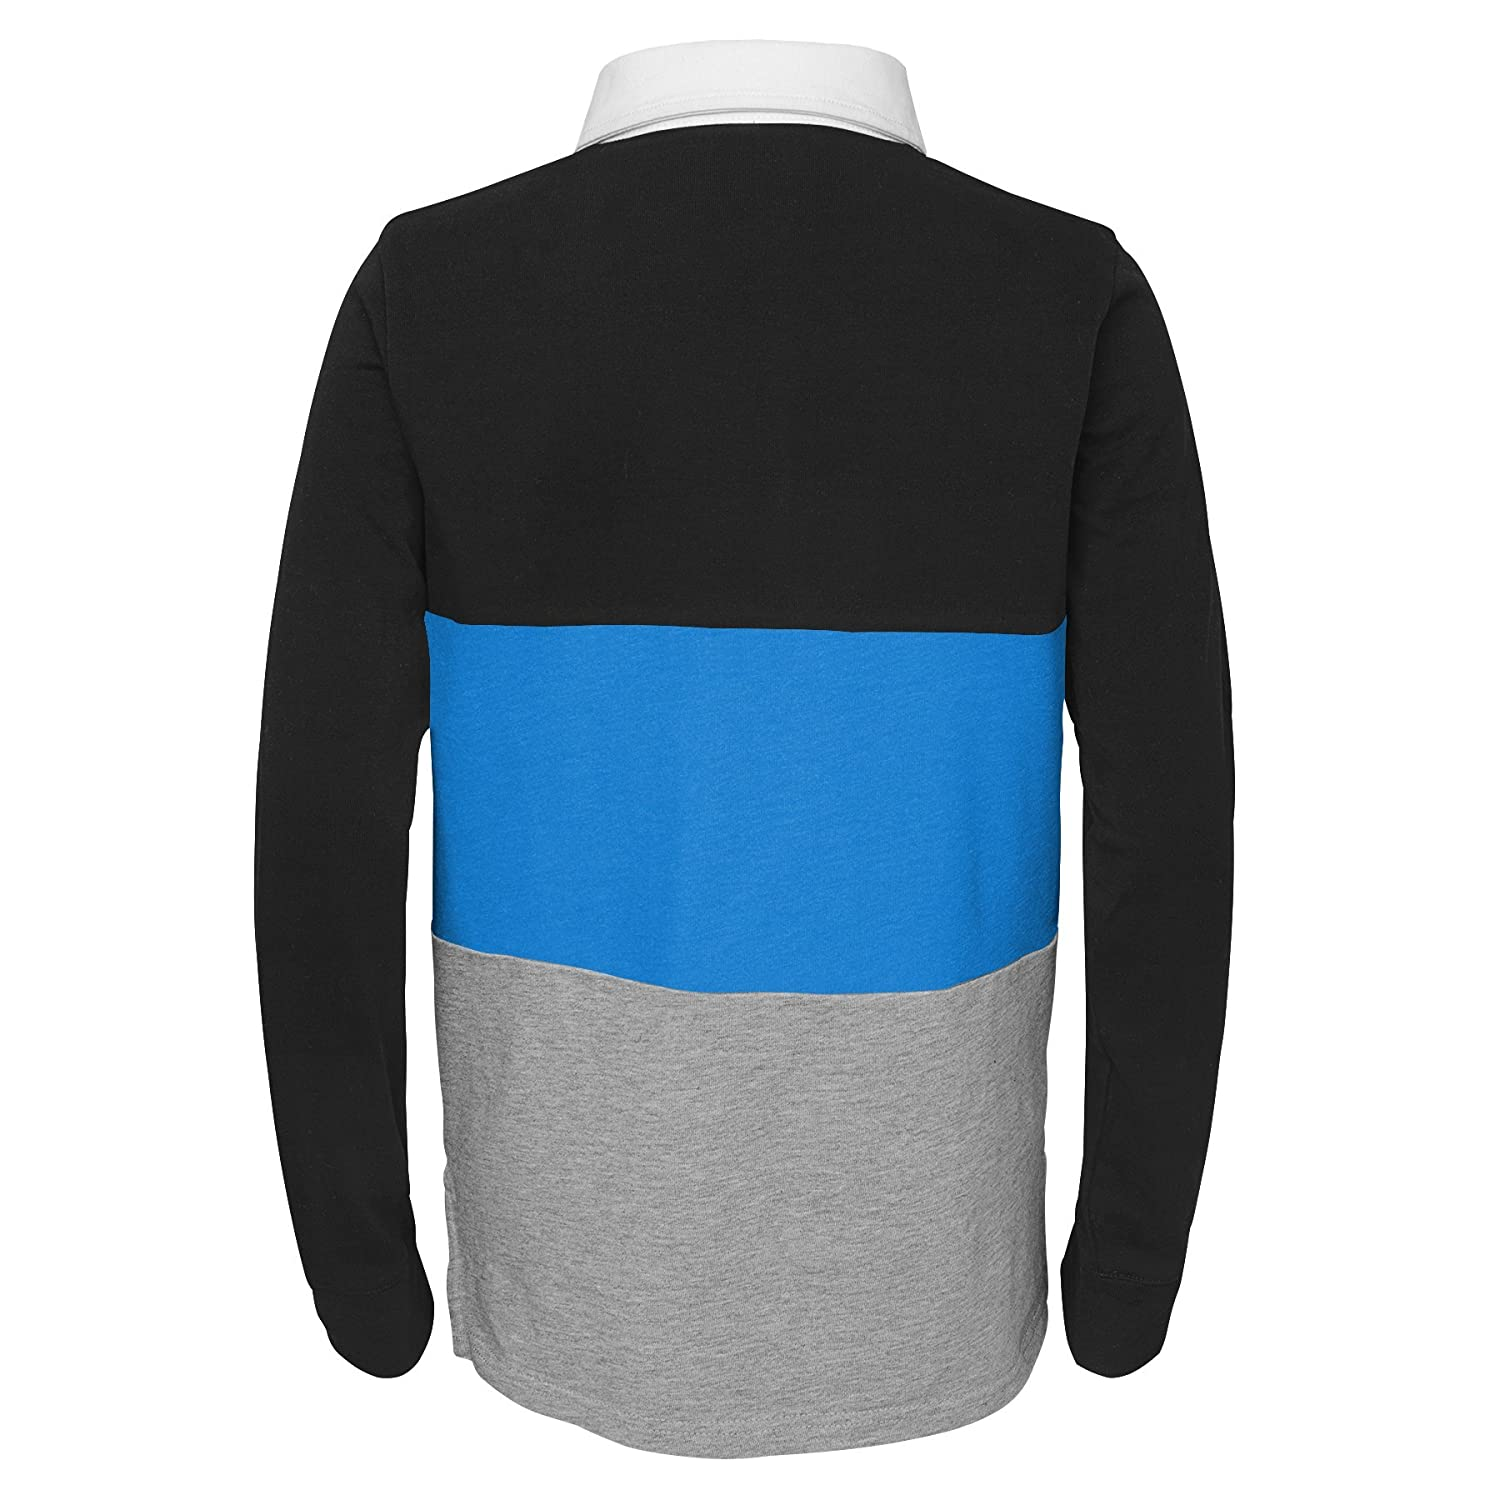 2213b2a2 Outerstuff Licensed Youth Apparel 9K1B7FAKP CPA --BXL20 Youth X-Large 18 NFL  Carolina Panthers Youth Boys State of Mind Long Sleeve ...